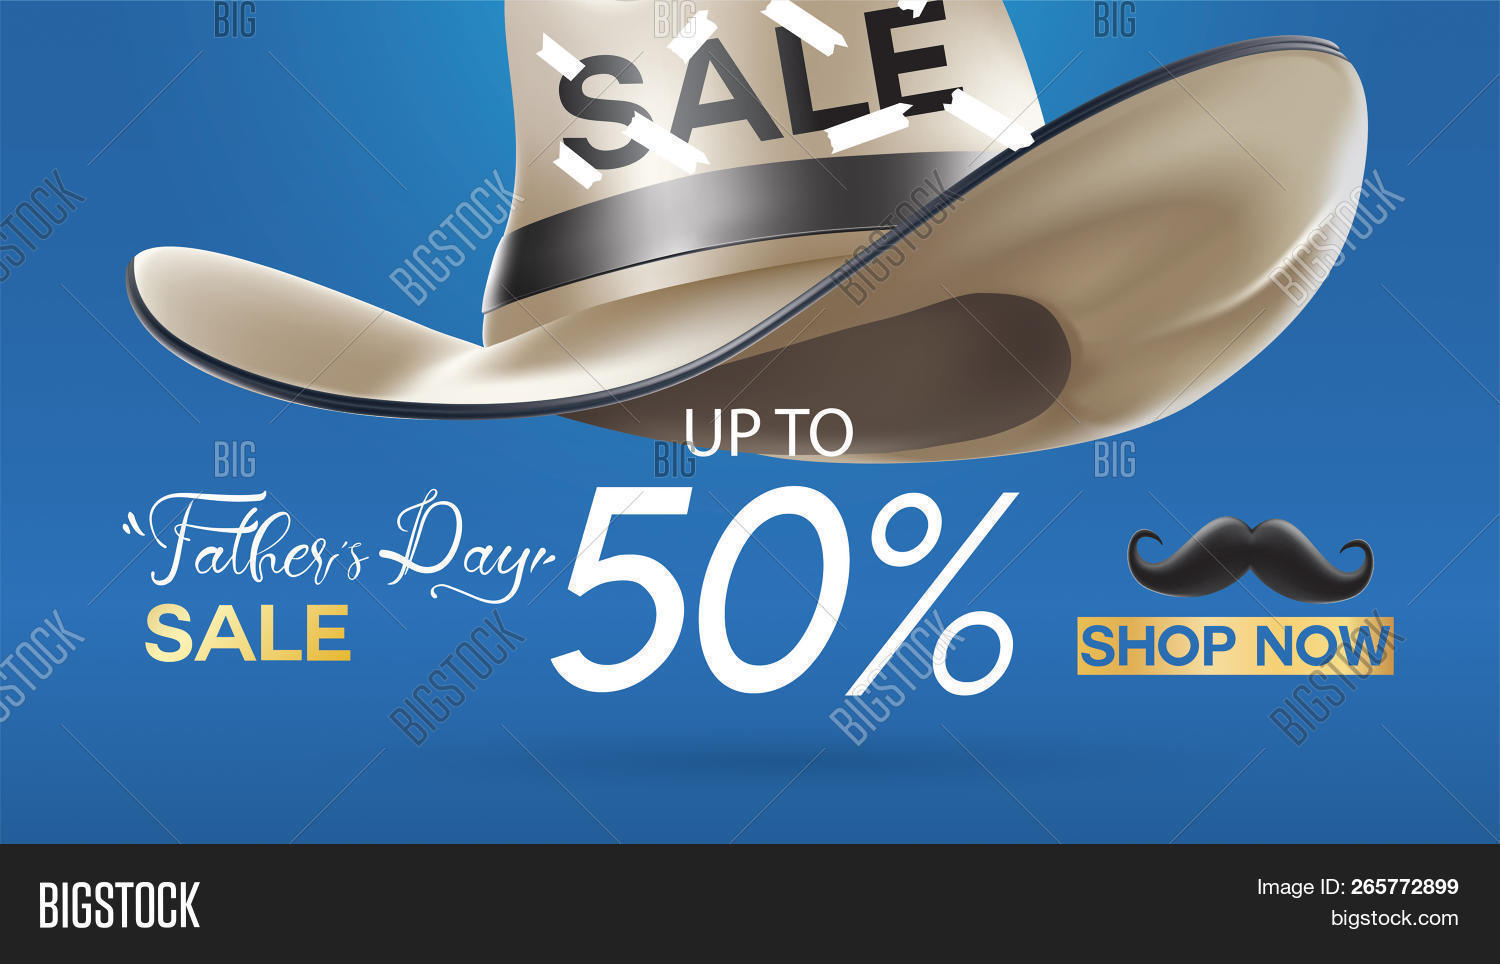 Happy Father S Day Sale Creative Promotion Poster Or Banner Shopping Template Design With 50 Off O 265772899 Image Stock Photo